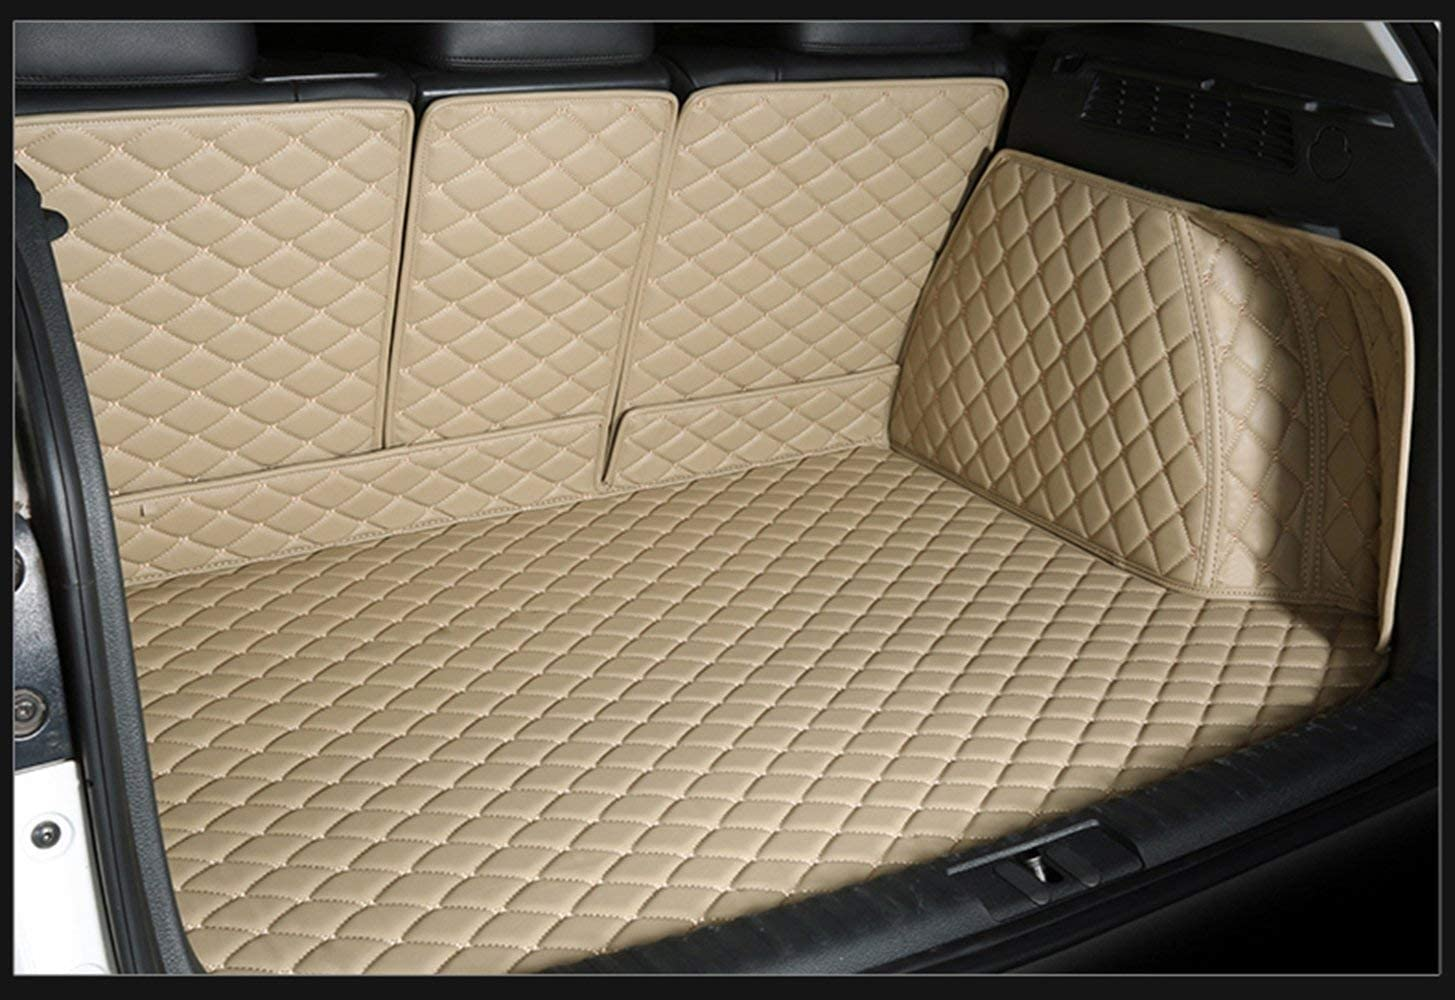 Bonus-Mats Custom Fit All-Weather Full Coverage Waterproof Car Cargo Liner Trunk Mat for Audi Q7 5 seat 2006-2015 Beige